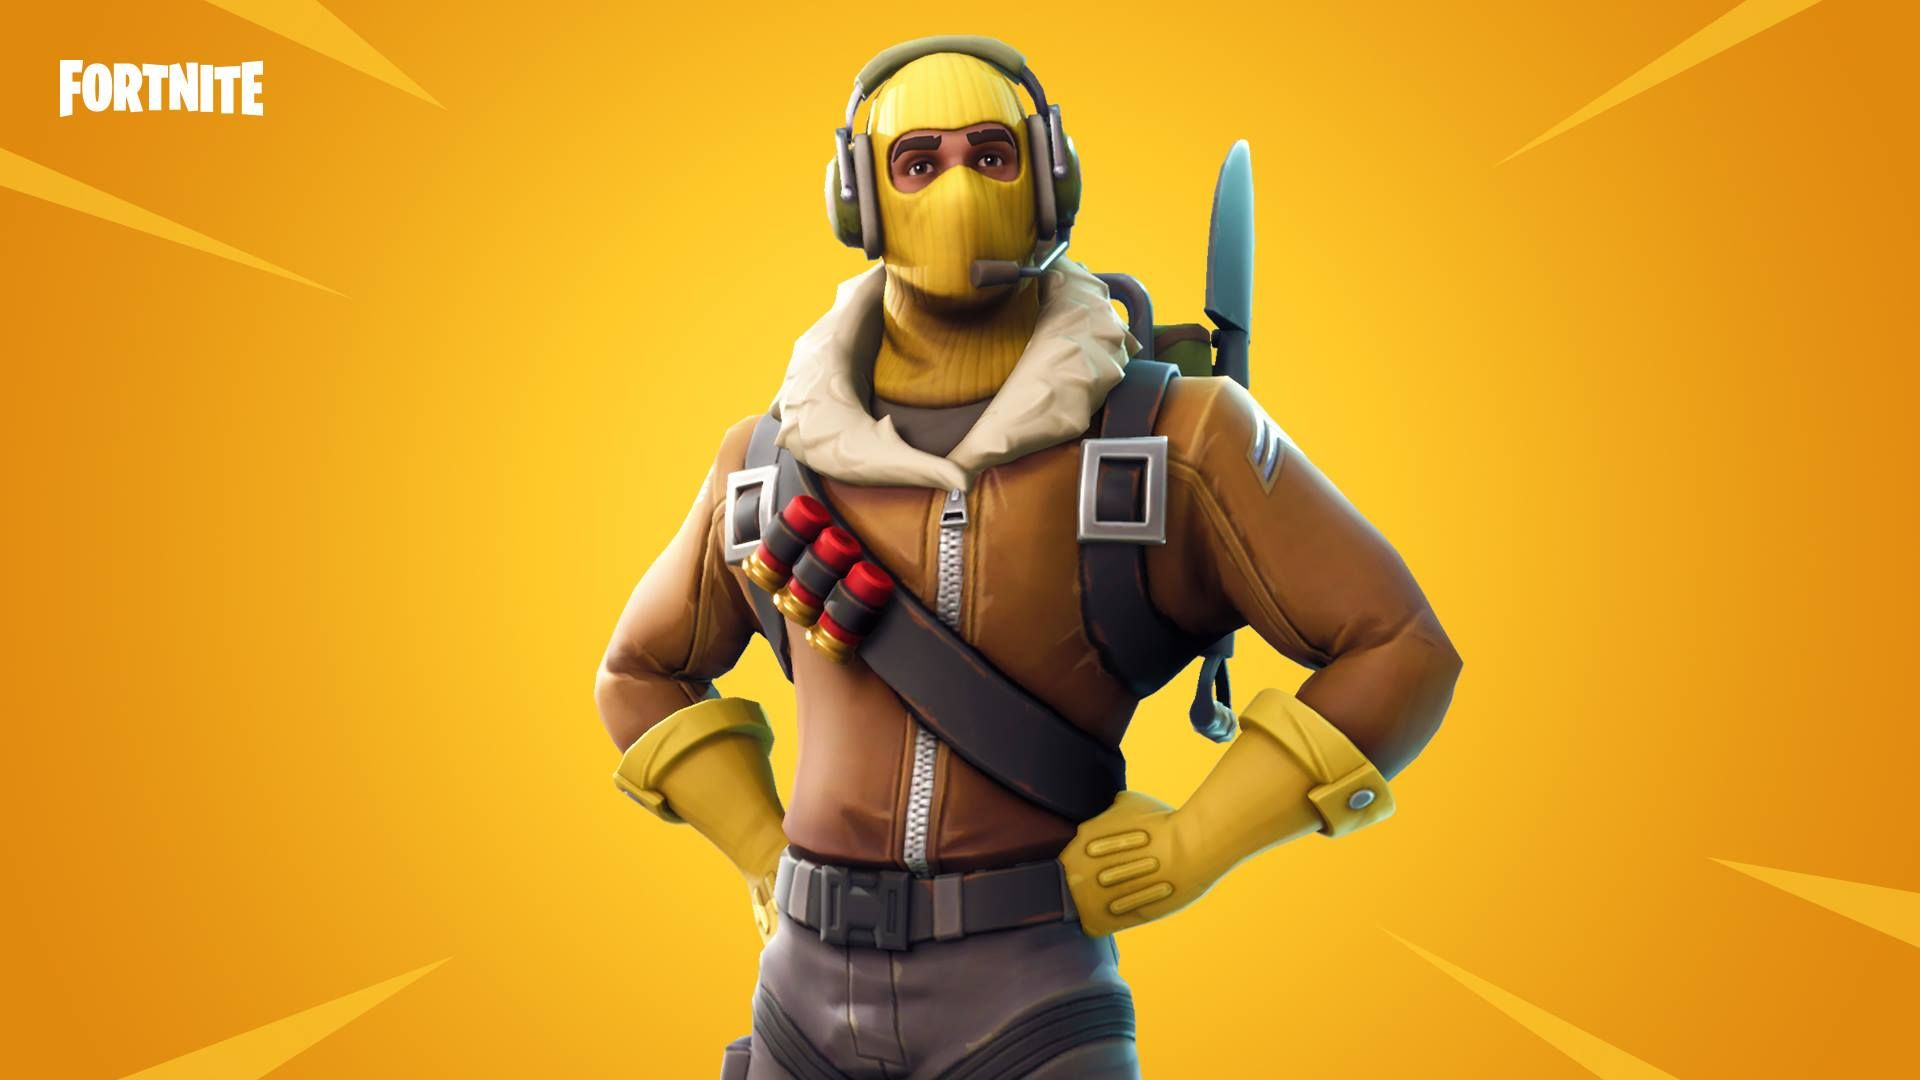 Fortnite raptor outfit